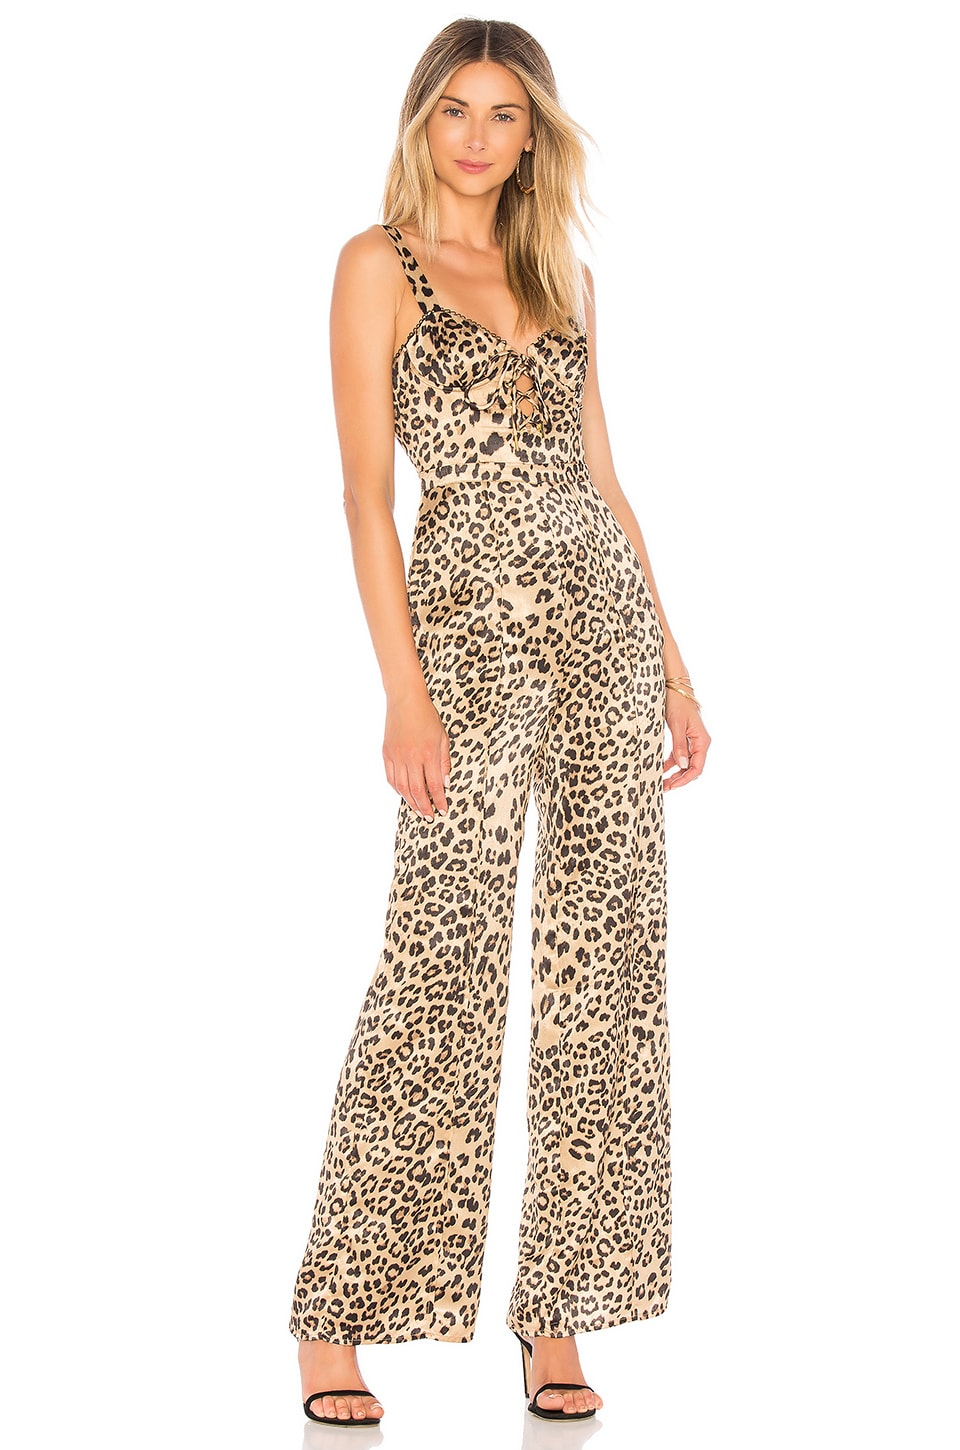 House of Harlow 1960 x REVOLVE Linda Jumpsuit in Leopard